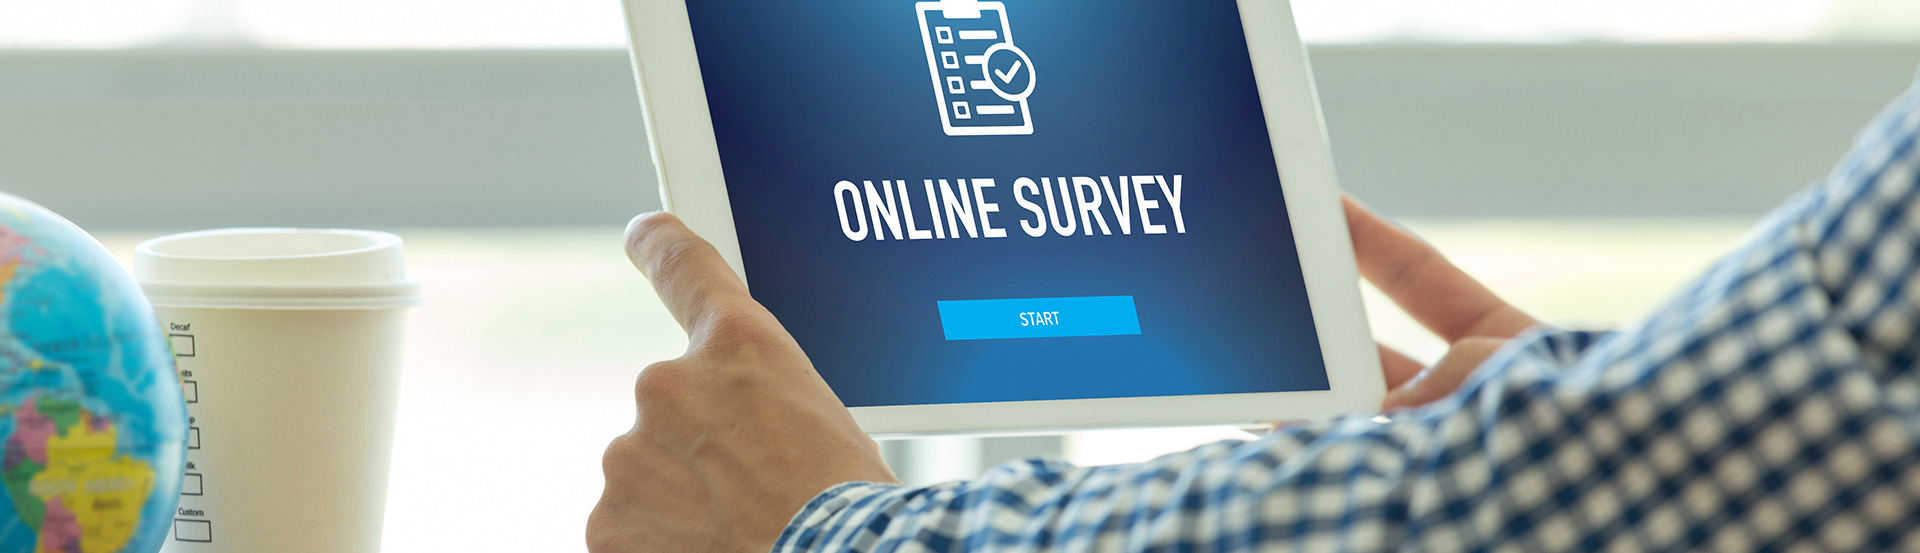 Legal aspects of the online survey